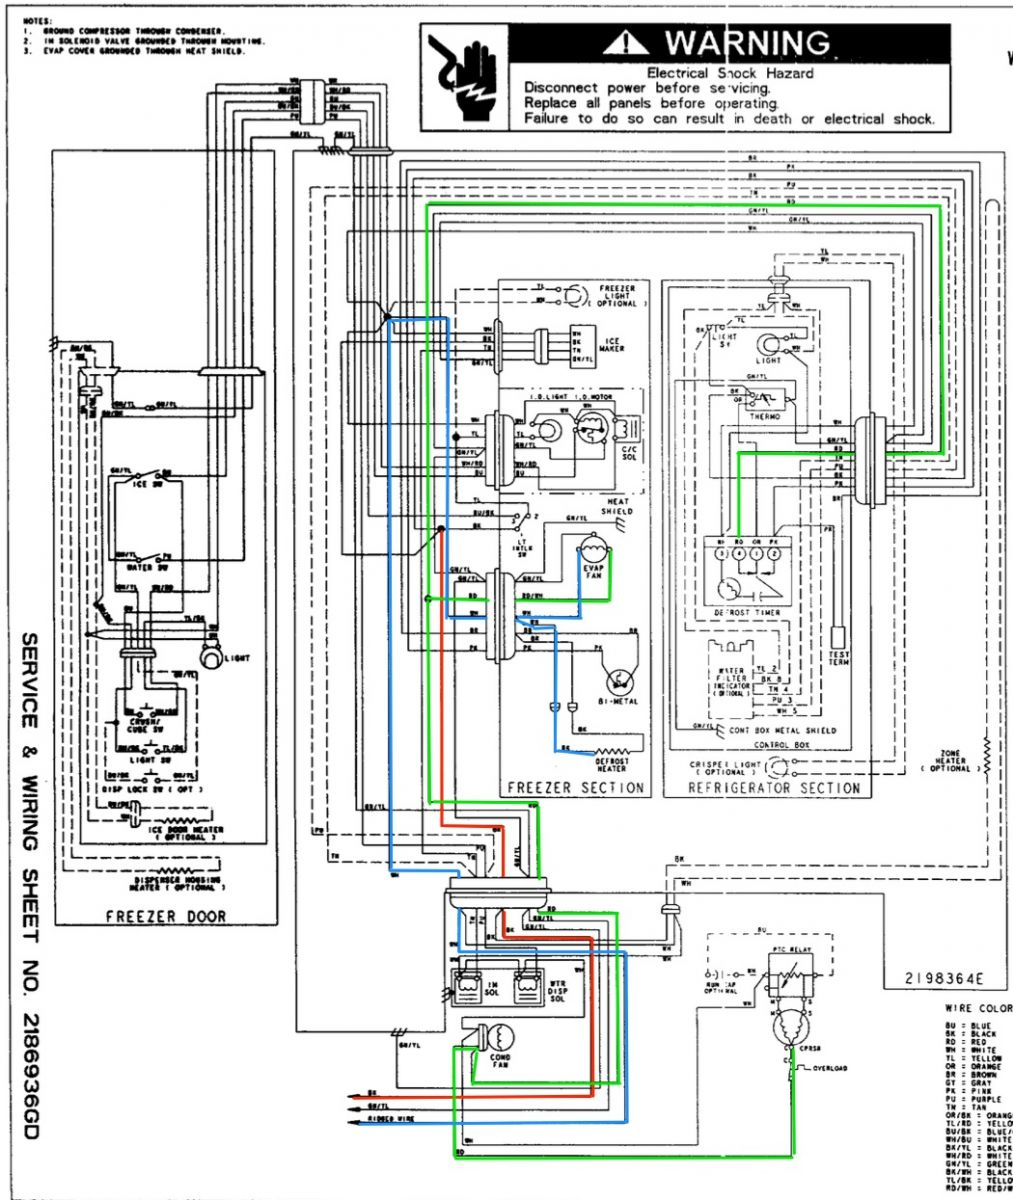 gallery_4_4_346879 whirlpool ed25rfxfw01 refrigerator wiring diagram the amana refrigerator wiring diagram at gsmx.co